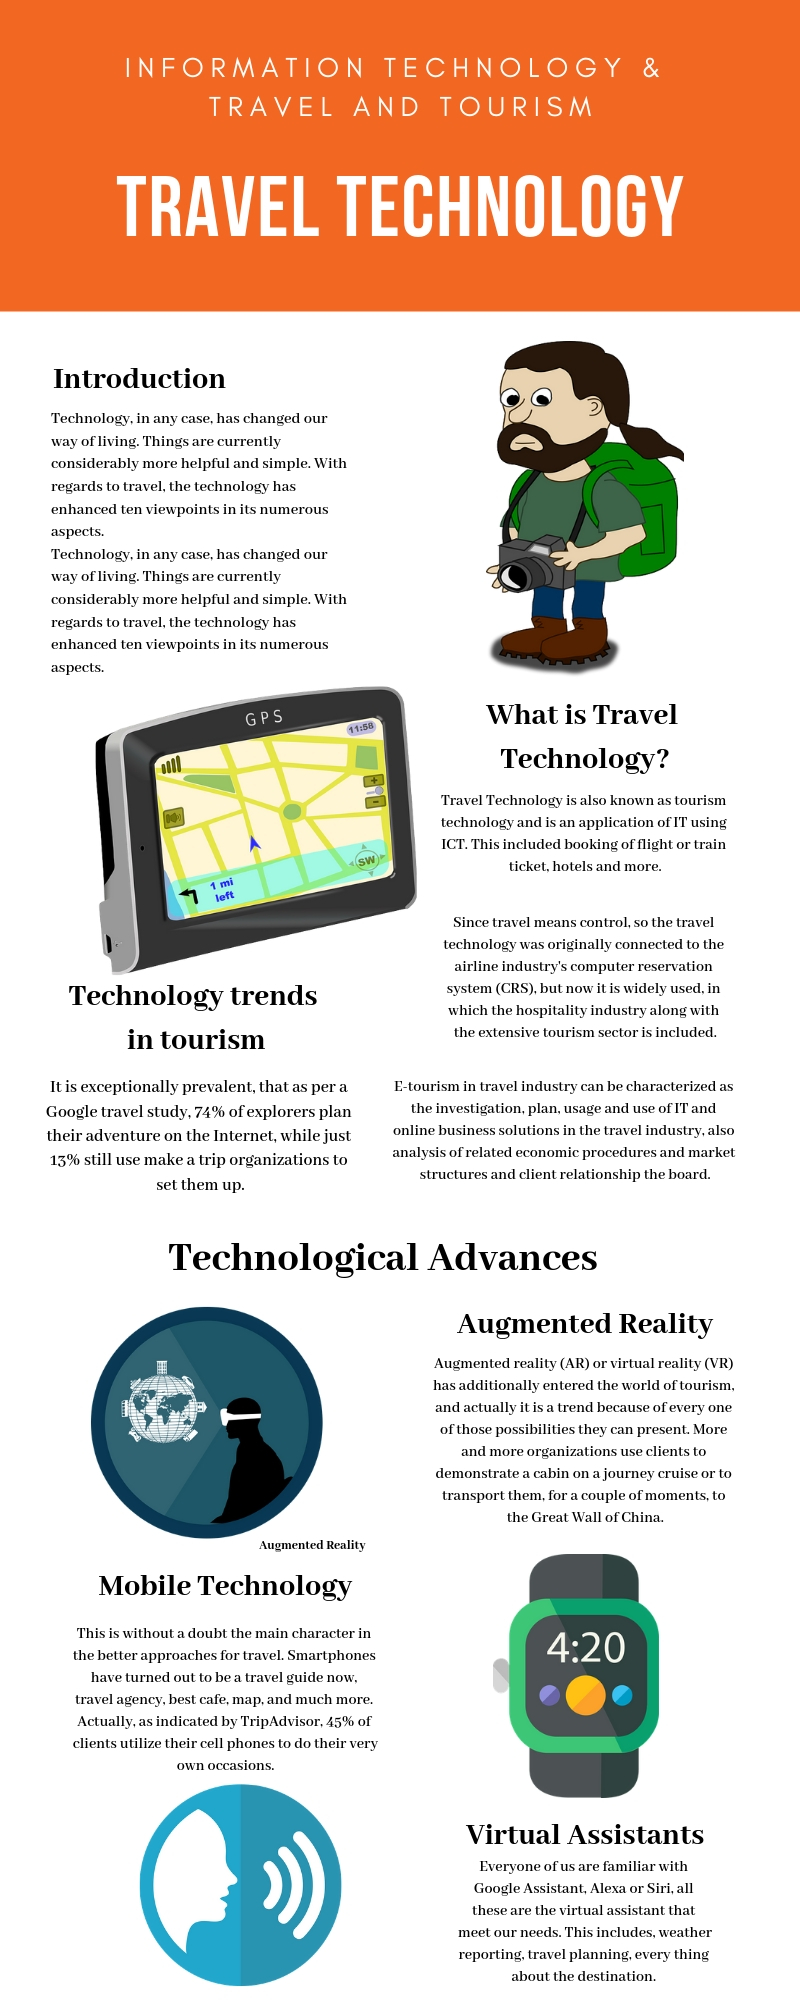 Use of technology in Travel